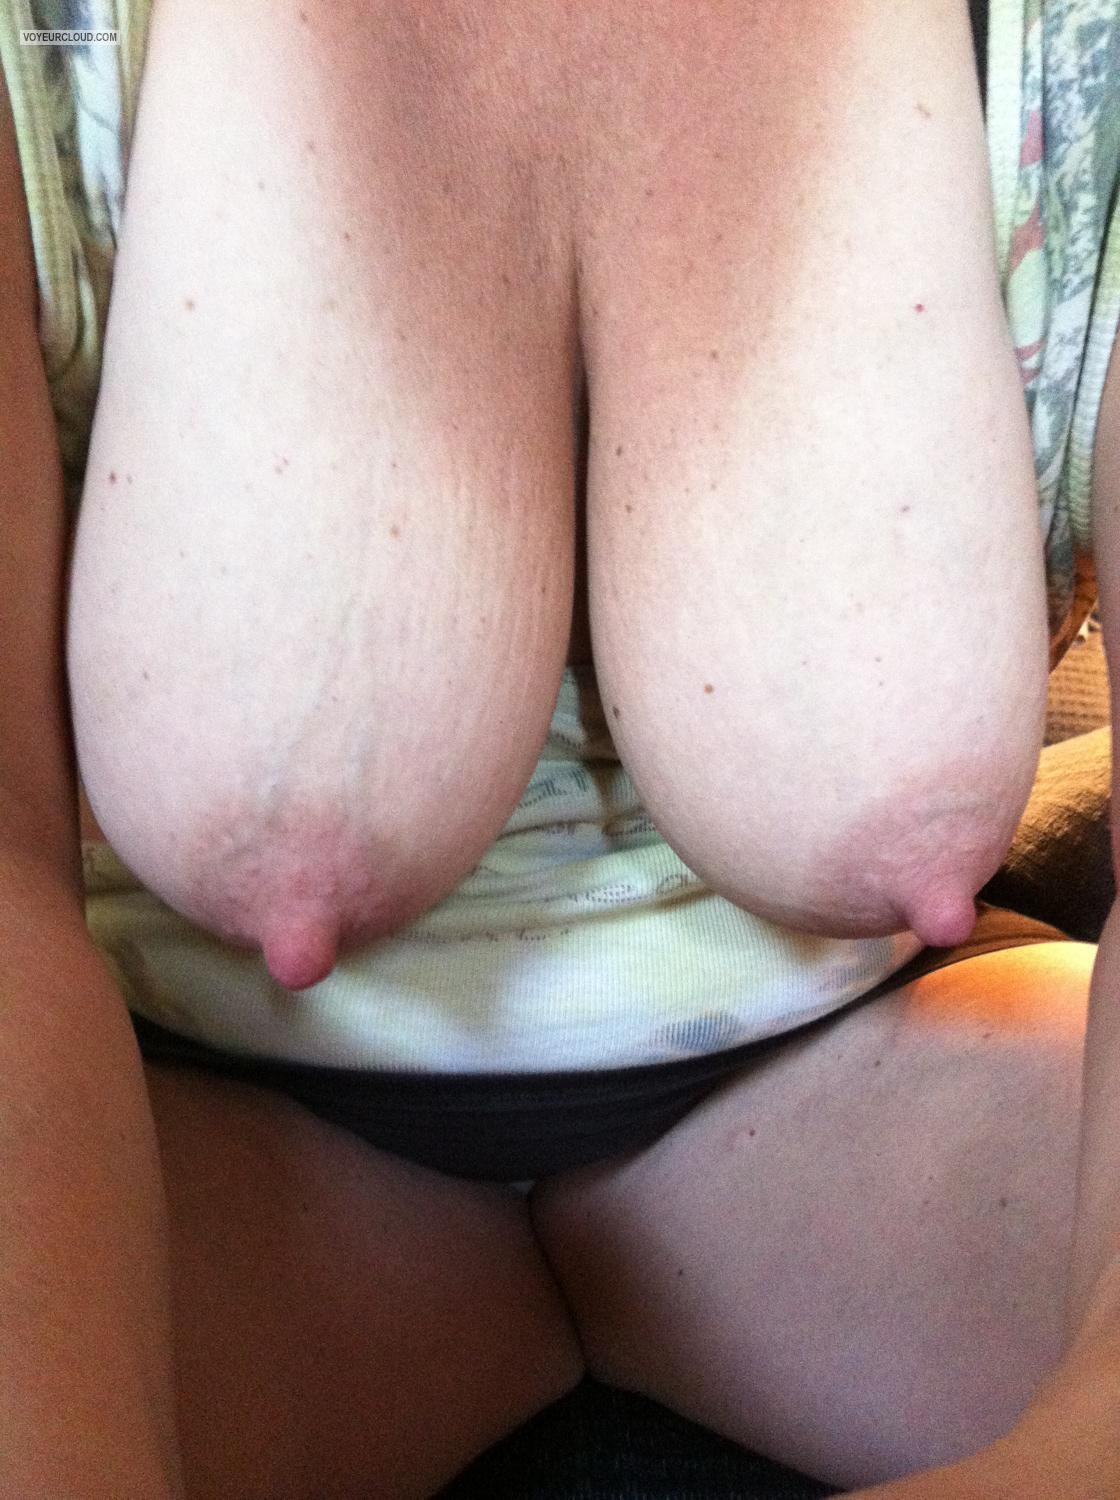 Tit Flash: Very Big Tits By IPhone - 42 Y/o Milf from United States